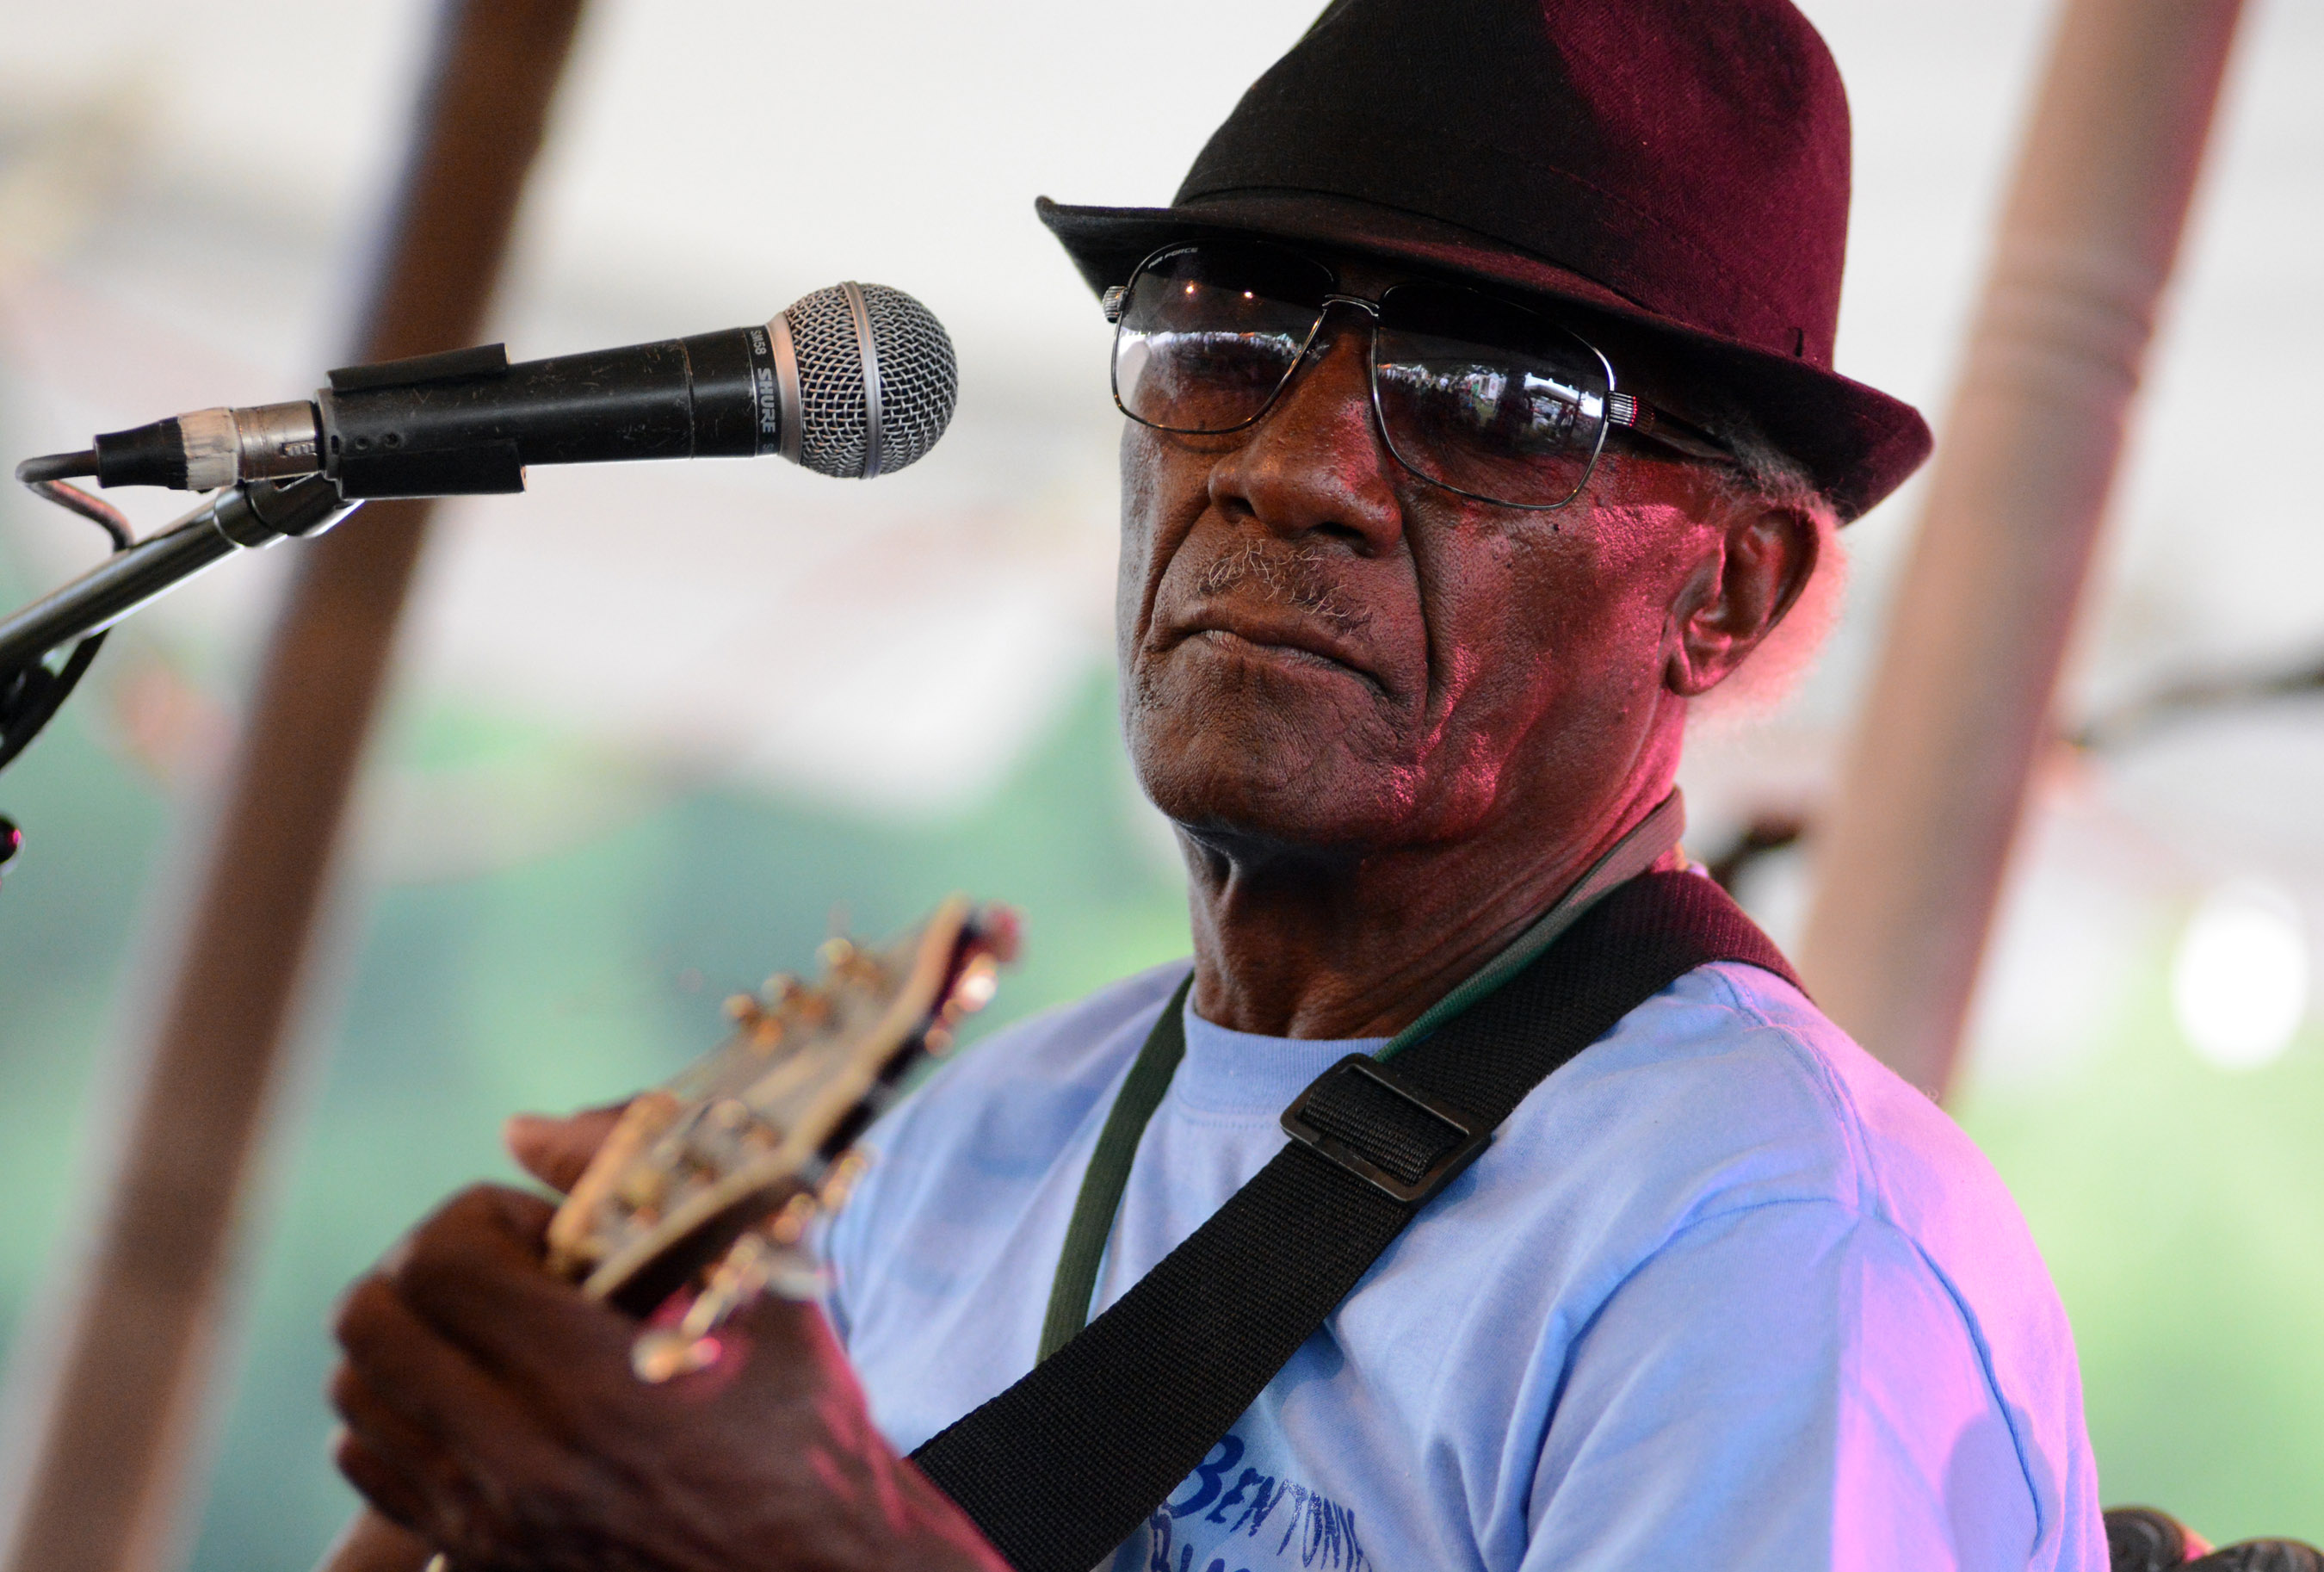 BRIGGS FARM SATURDAY PHOTOS: 'BIG A' SHERROD, JIMMY 'DUCK' HOLMES & DUSTIN DOUGLAS